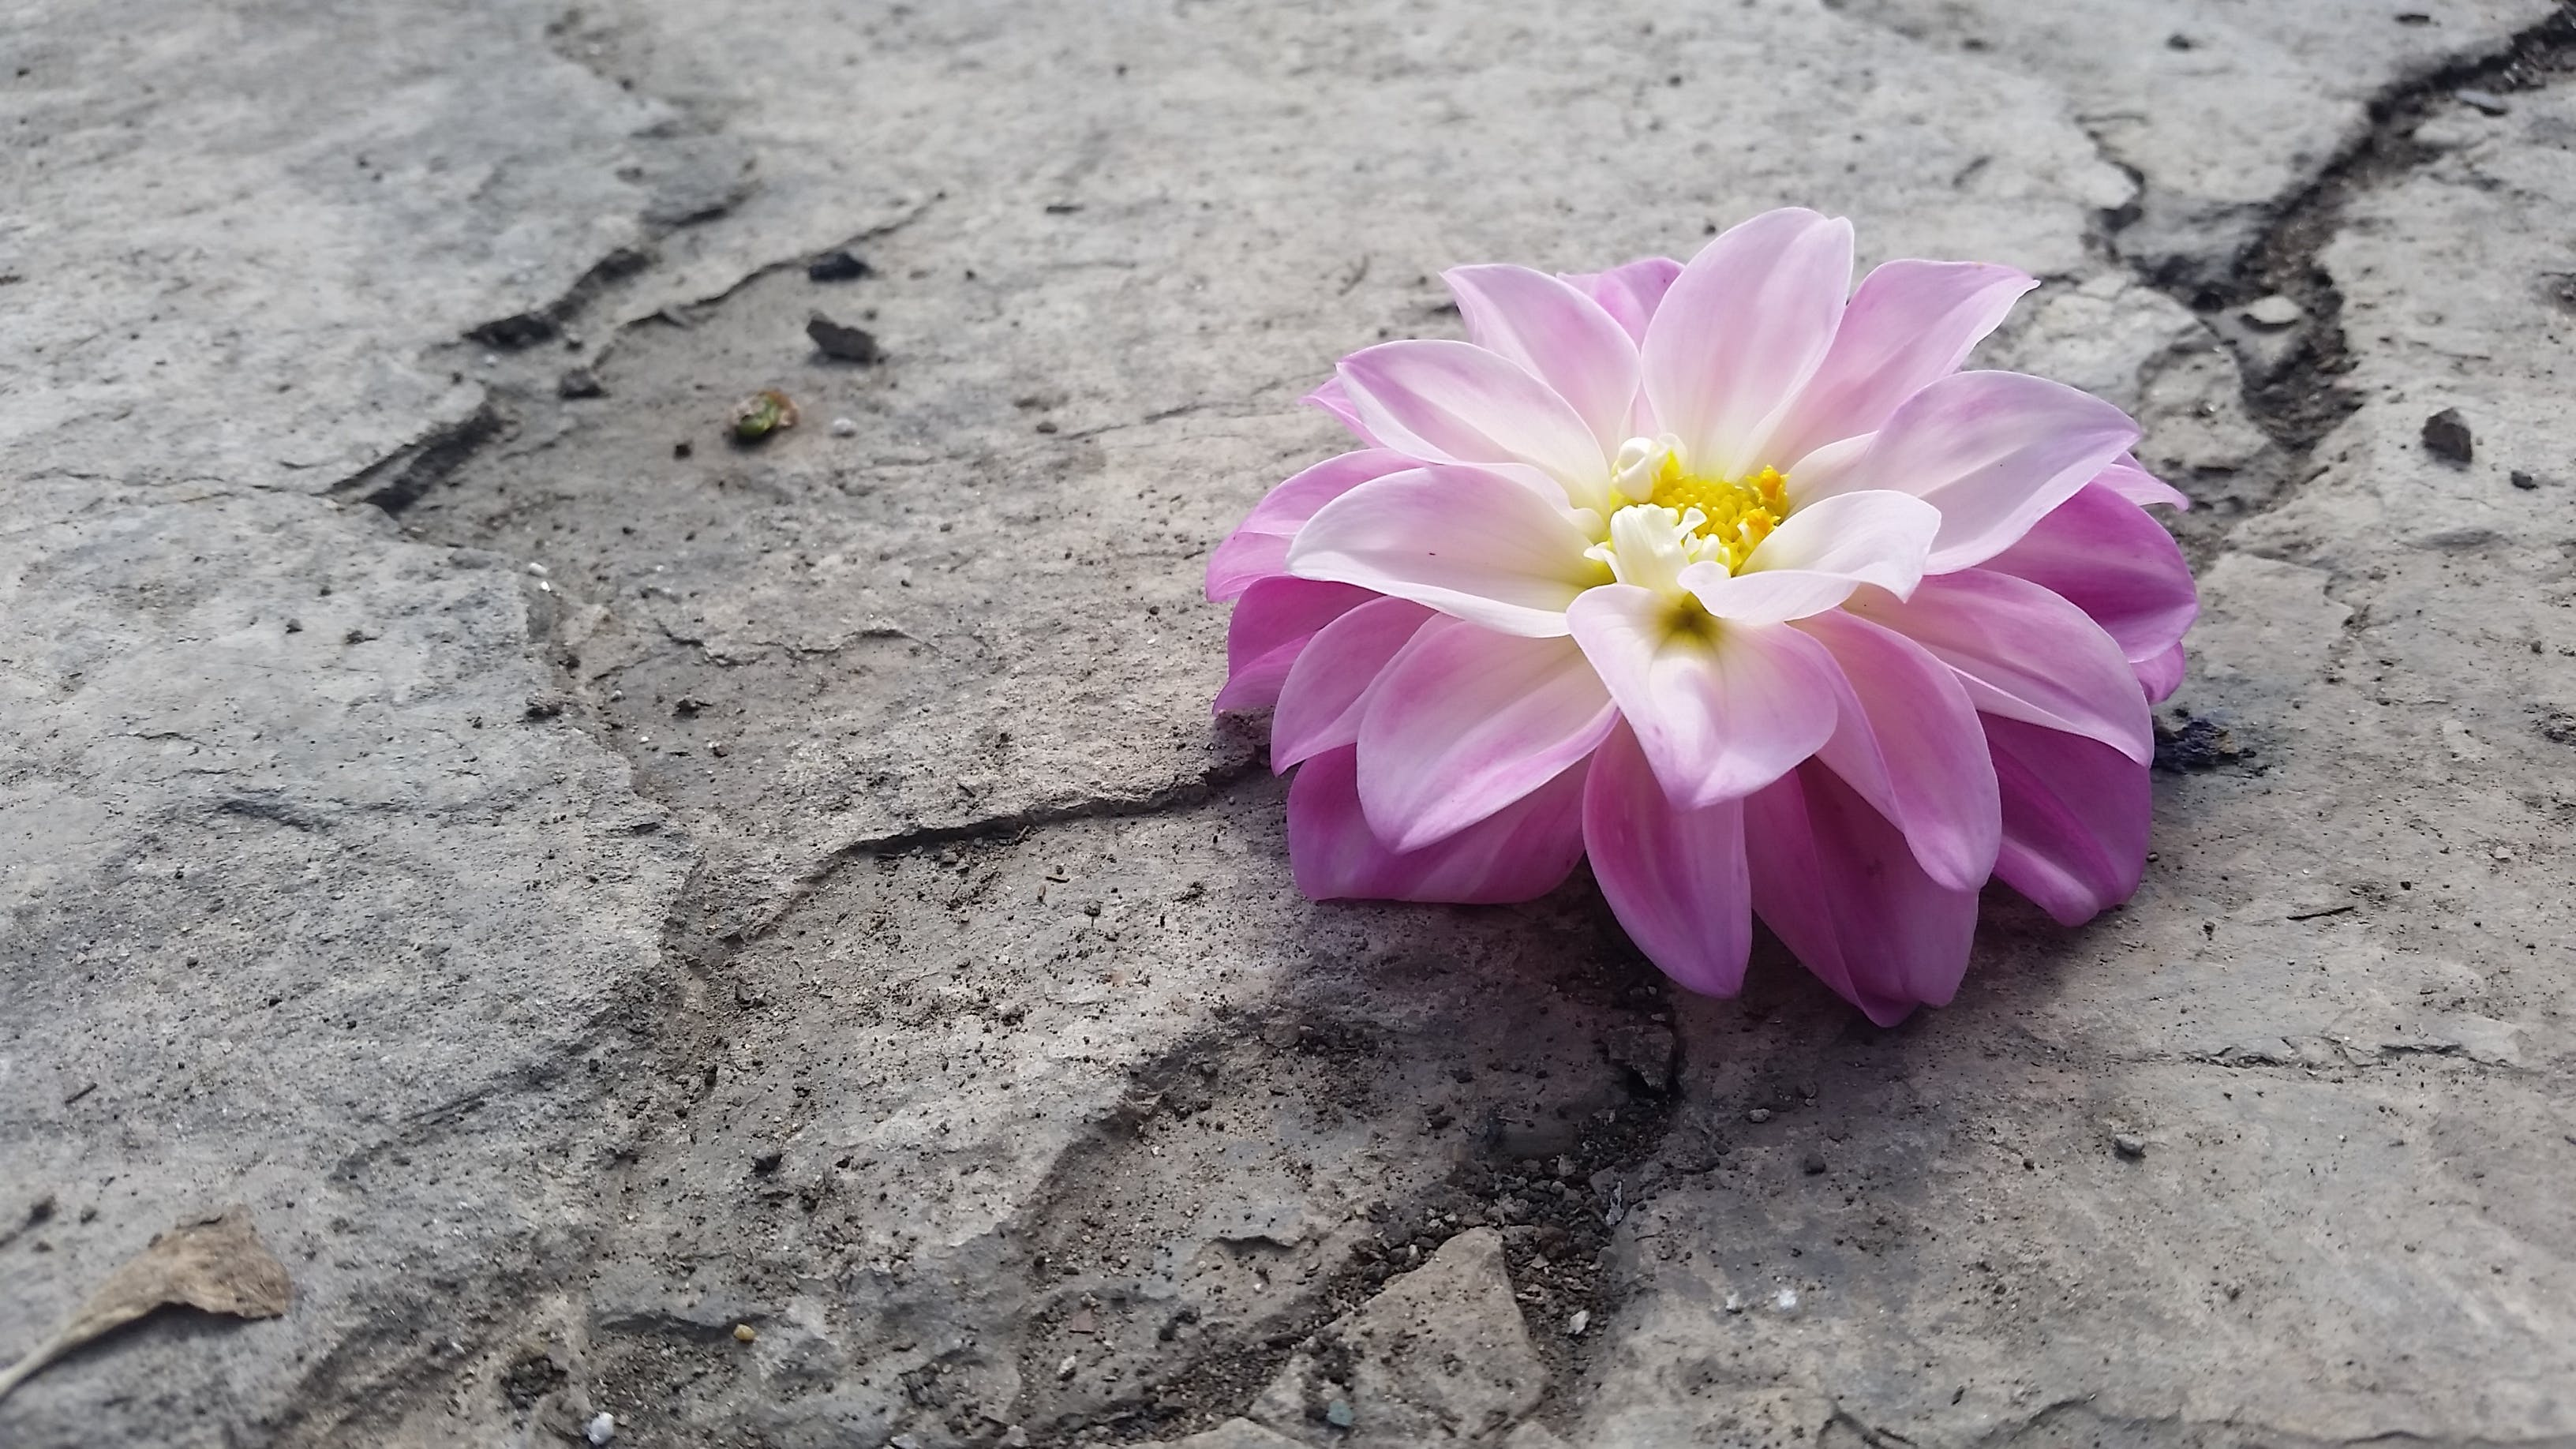 Free stock photo of concret, crack, flora, flower